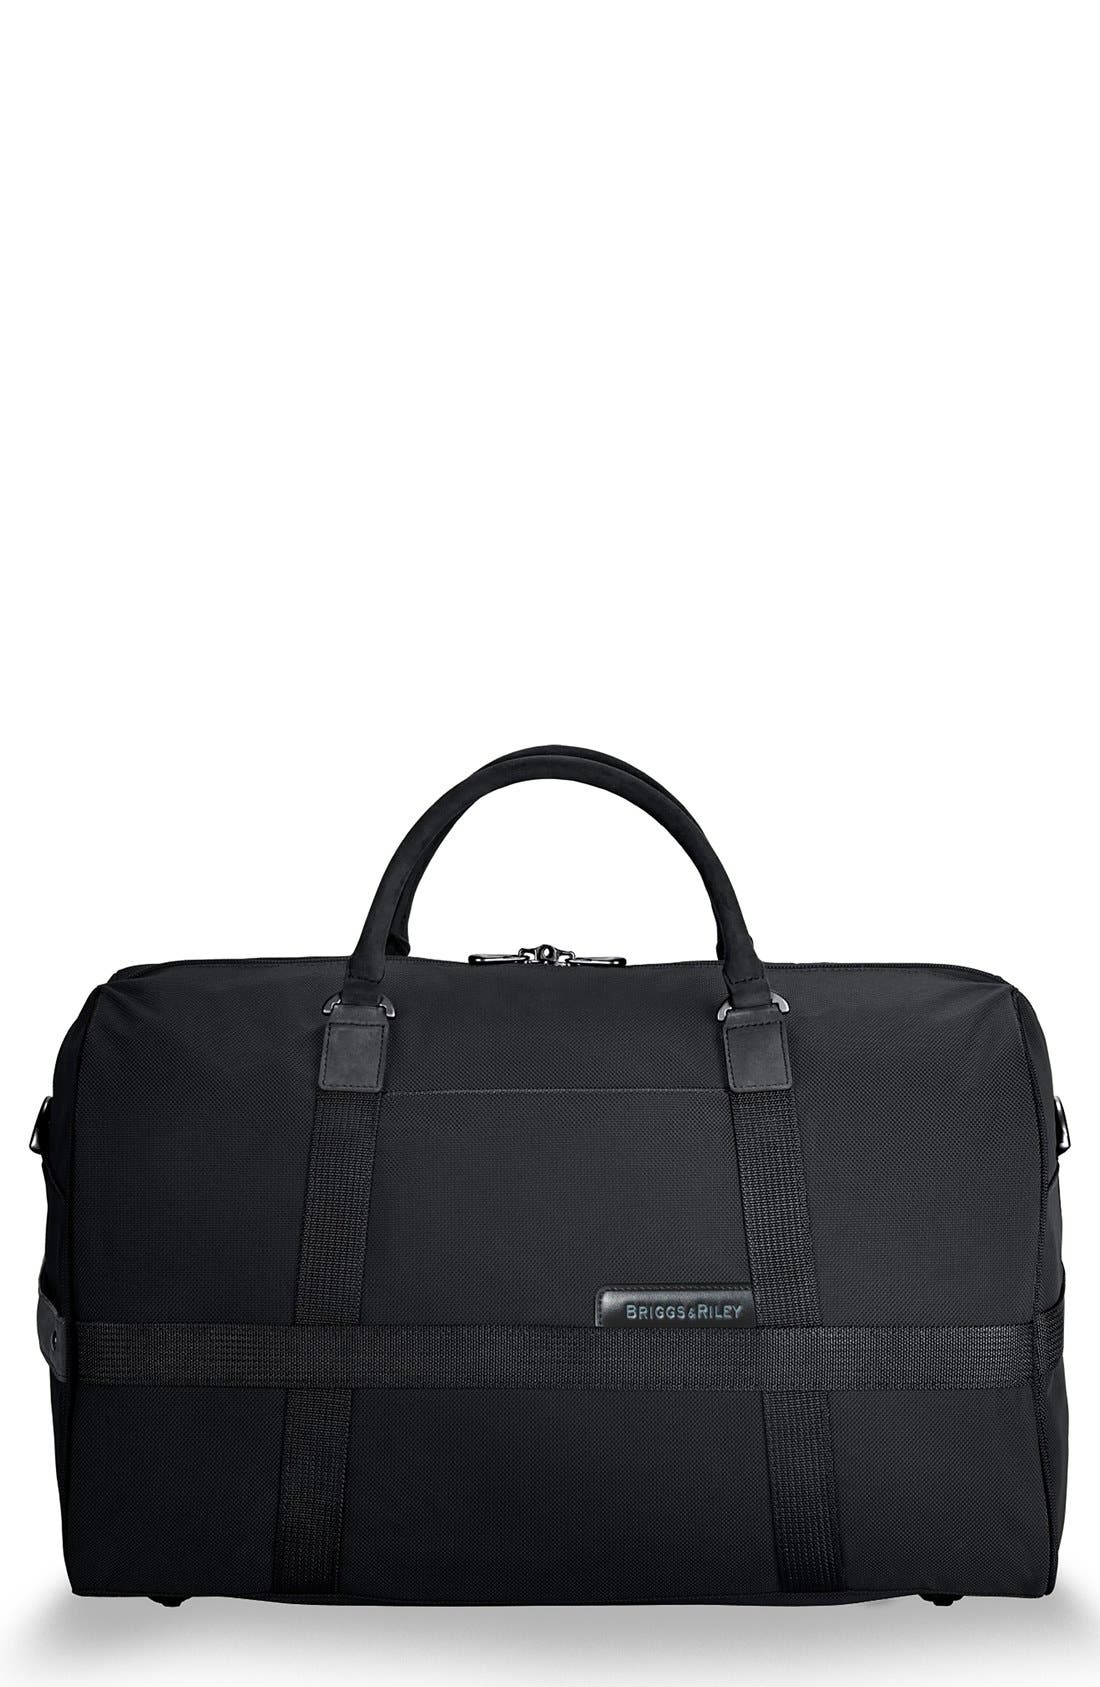 Briggs & Riley 'Baseline - Medium' Duffel Bag (22 Inch)